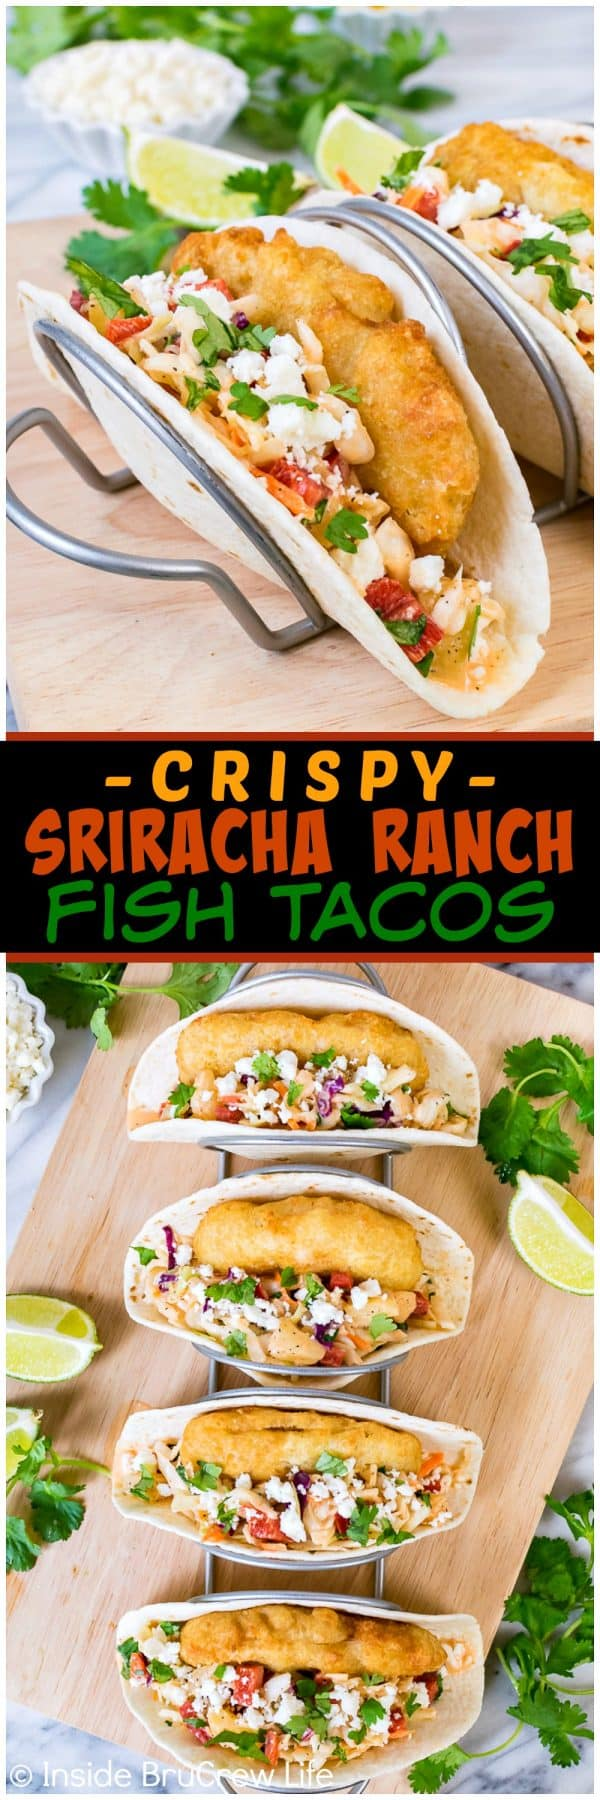 Crispy Sriracha Ranch Fish Tacos - sweet and spicy coleslaw, crunchy fish, and crumbled cheese makes this taco a great dinner choice for busy nights